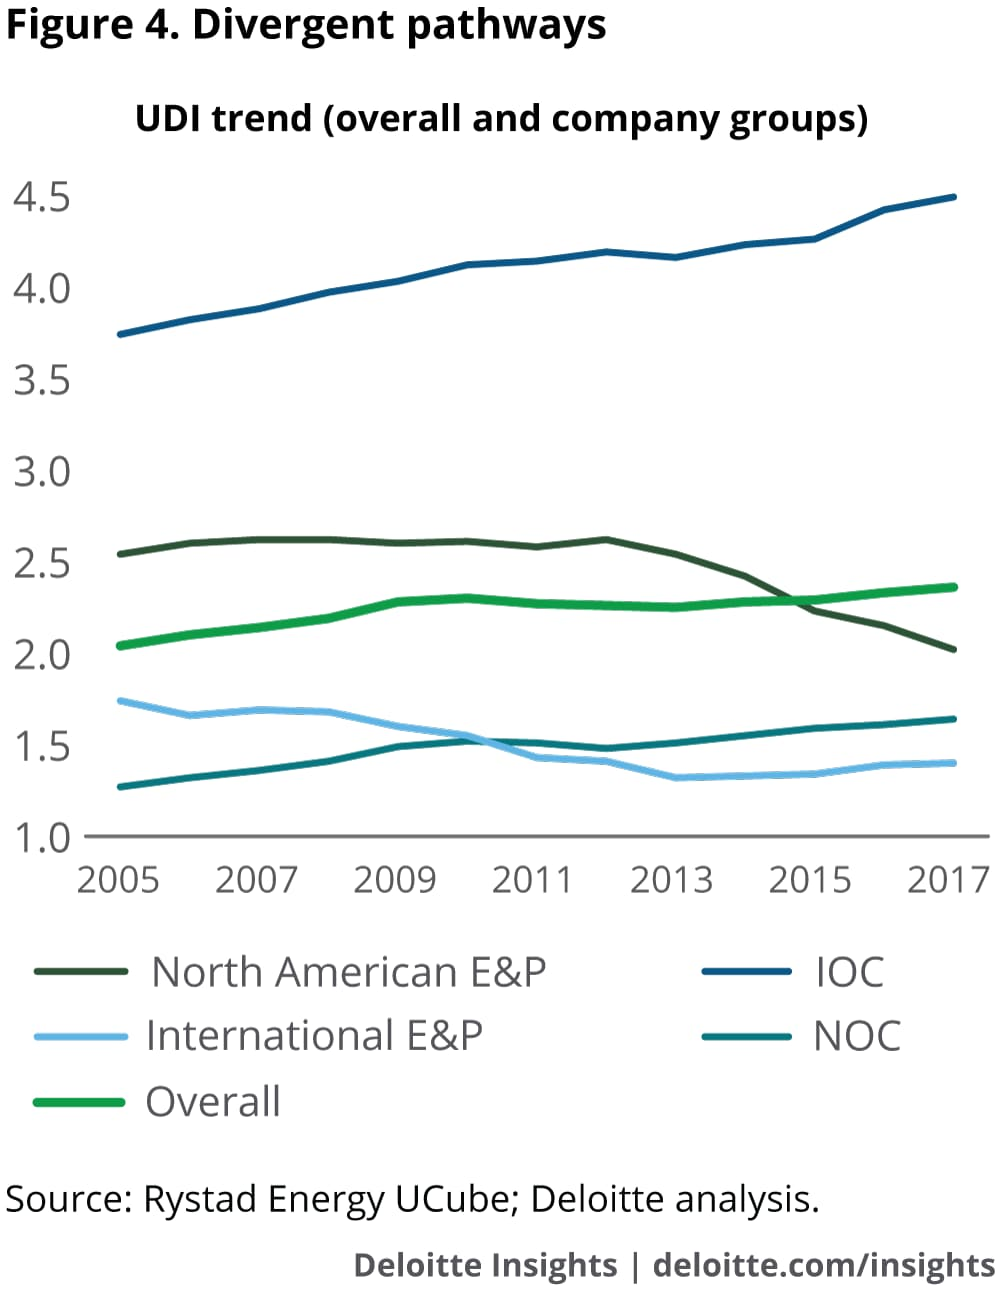 Divergent pathways